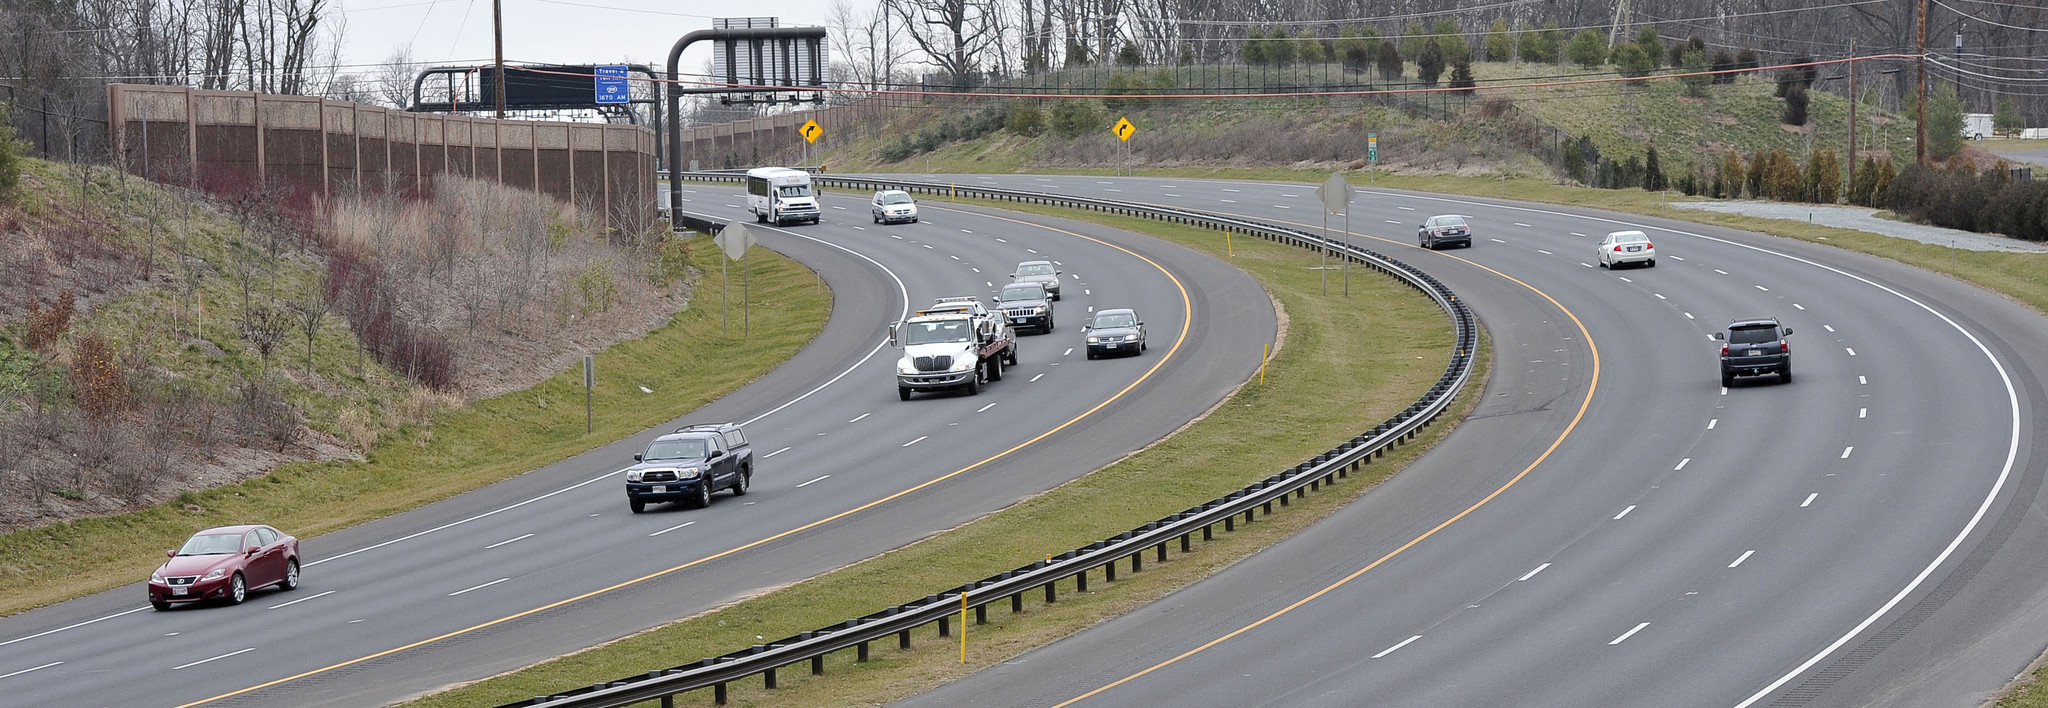 Icc extension to route 1 delayed by harsh winter laurel for Route 1 motors inc laurel md